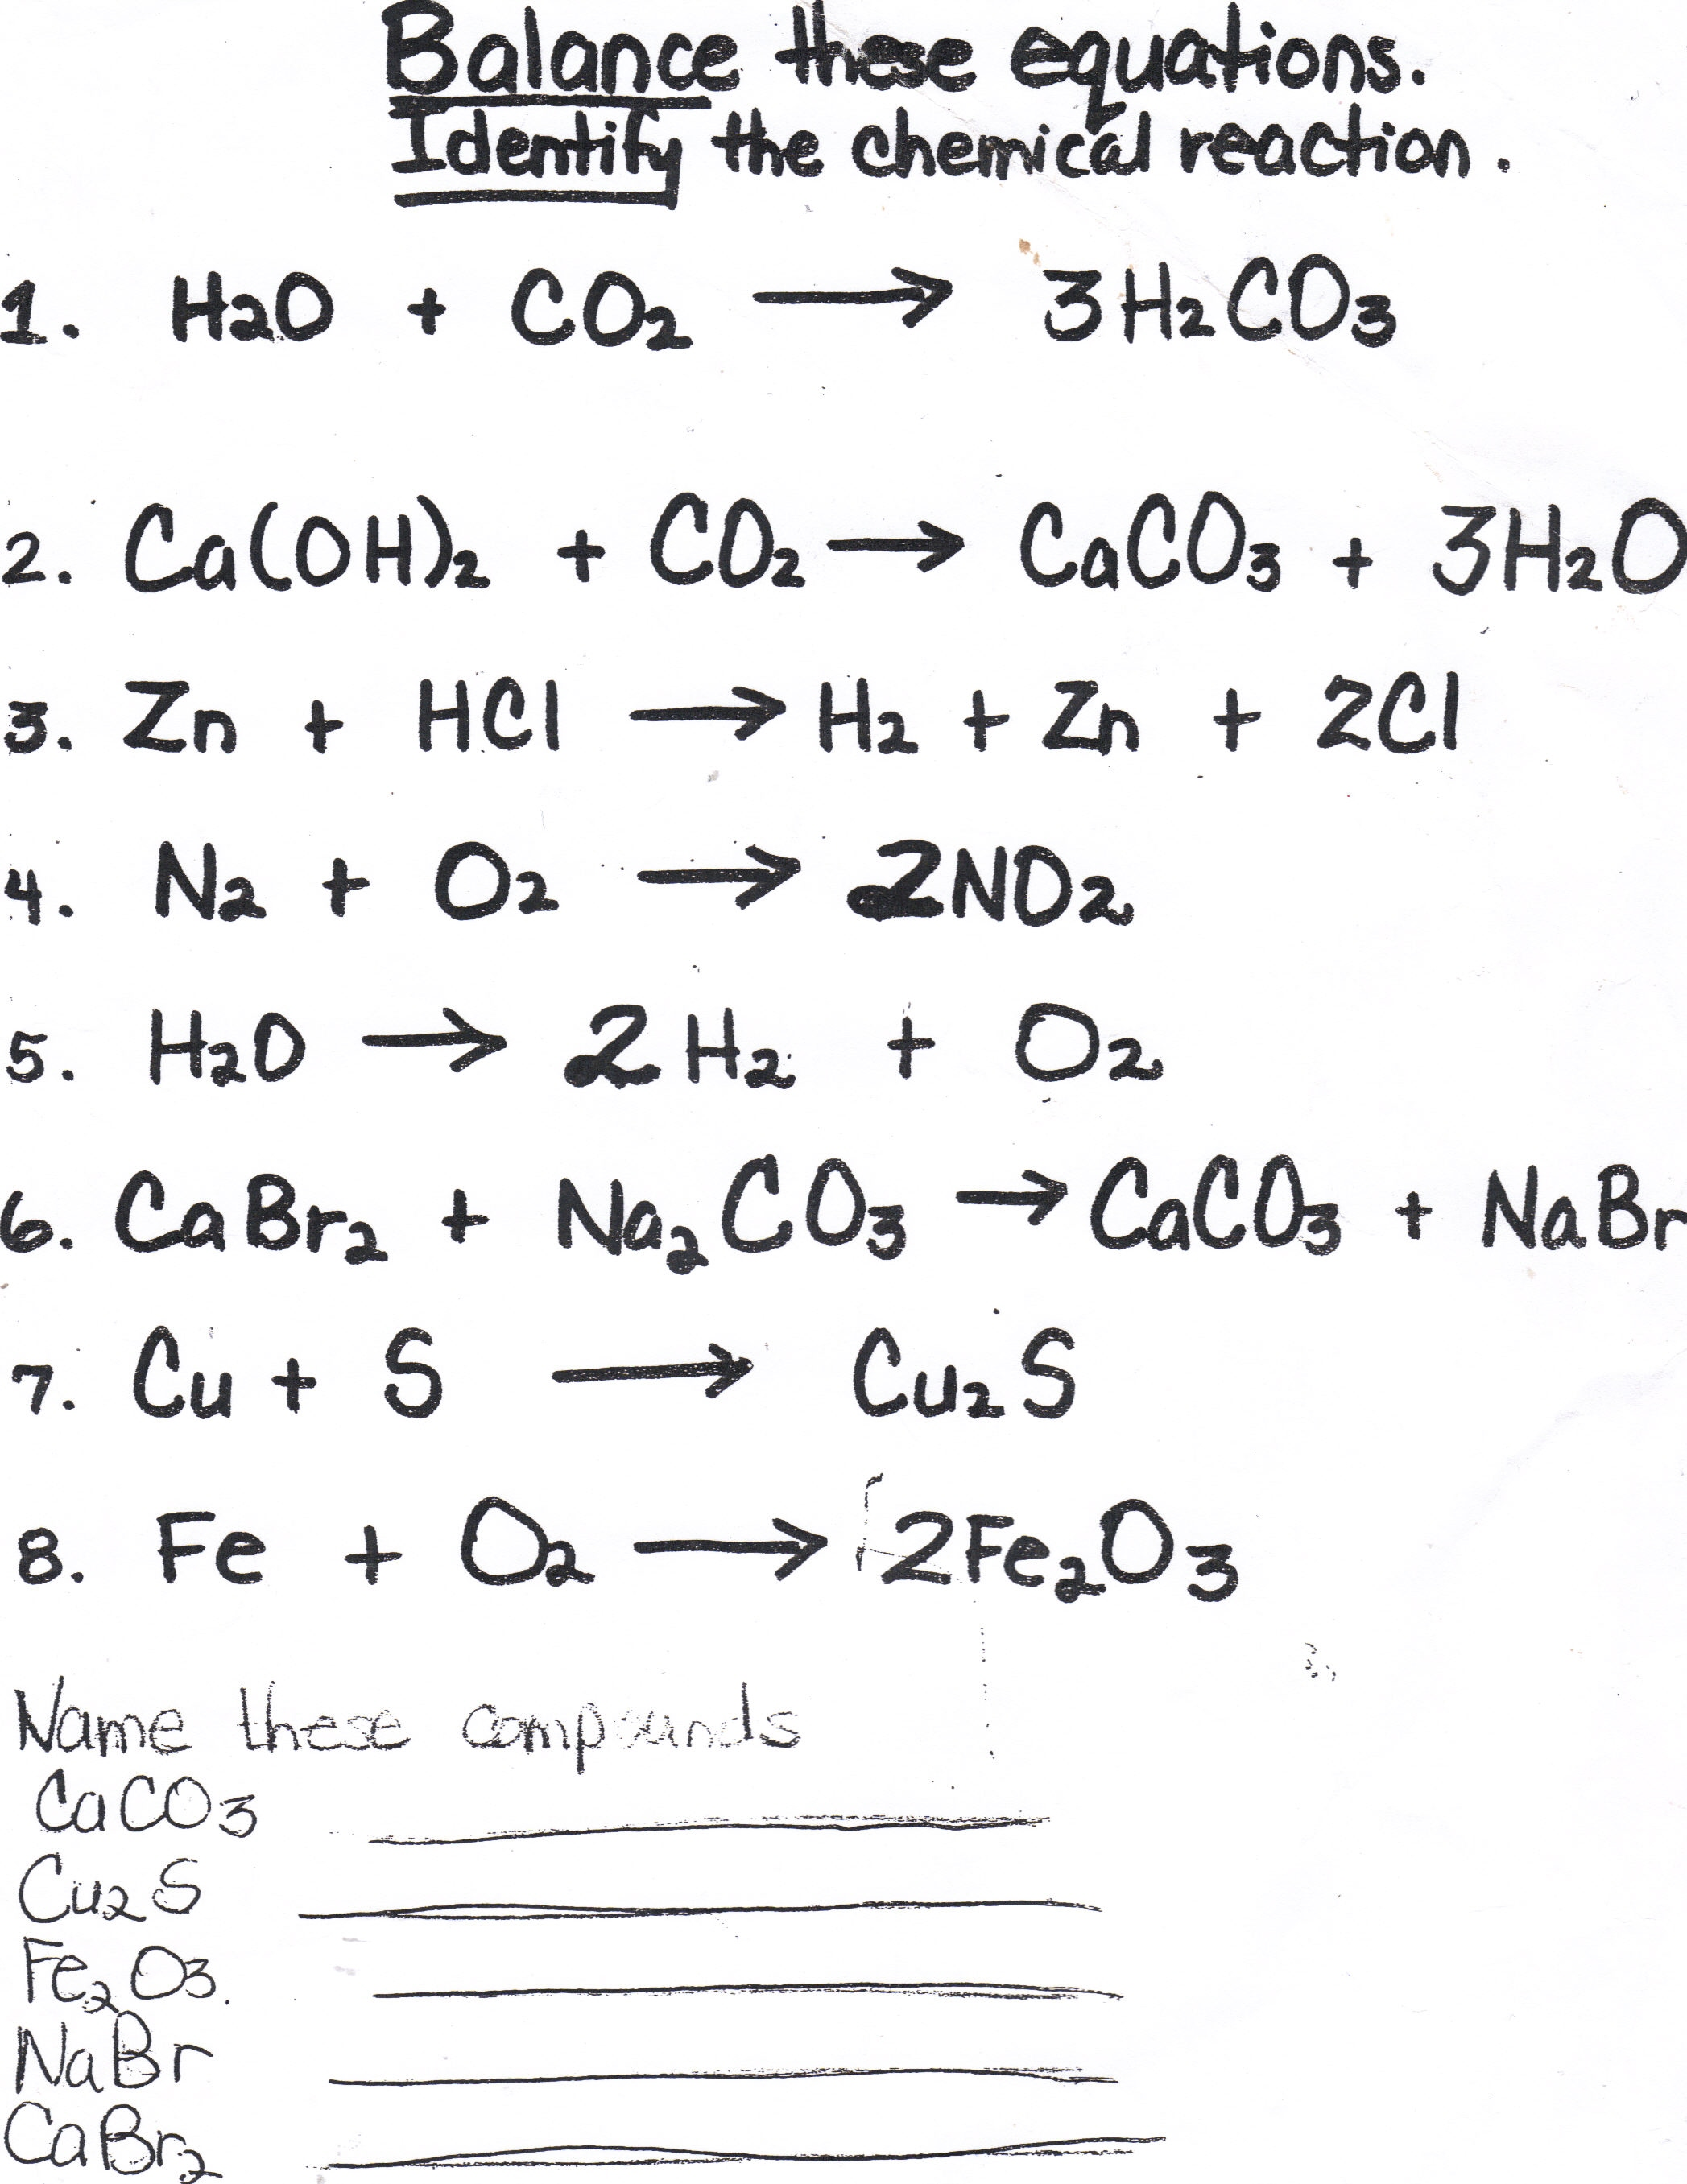 8th Grade Science Balancing Chemical Equations Worksheet